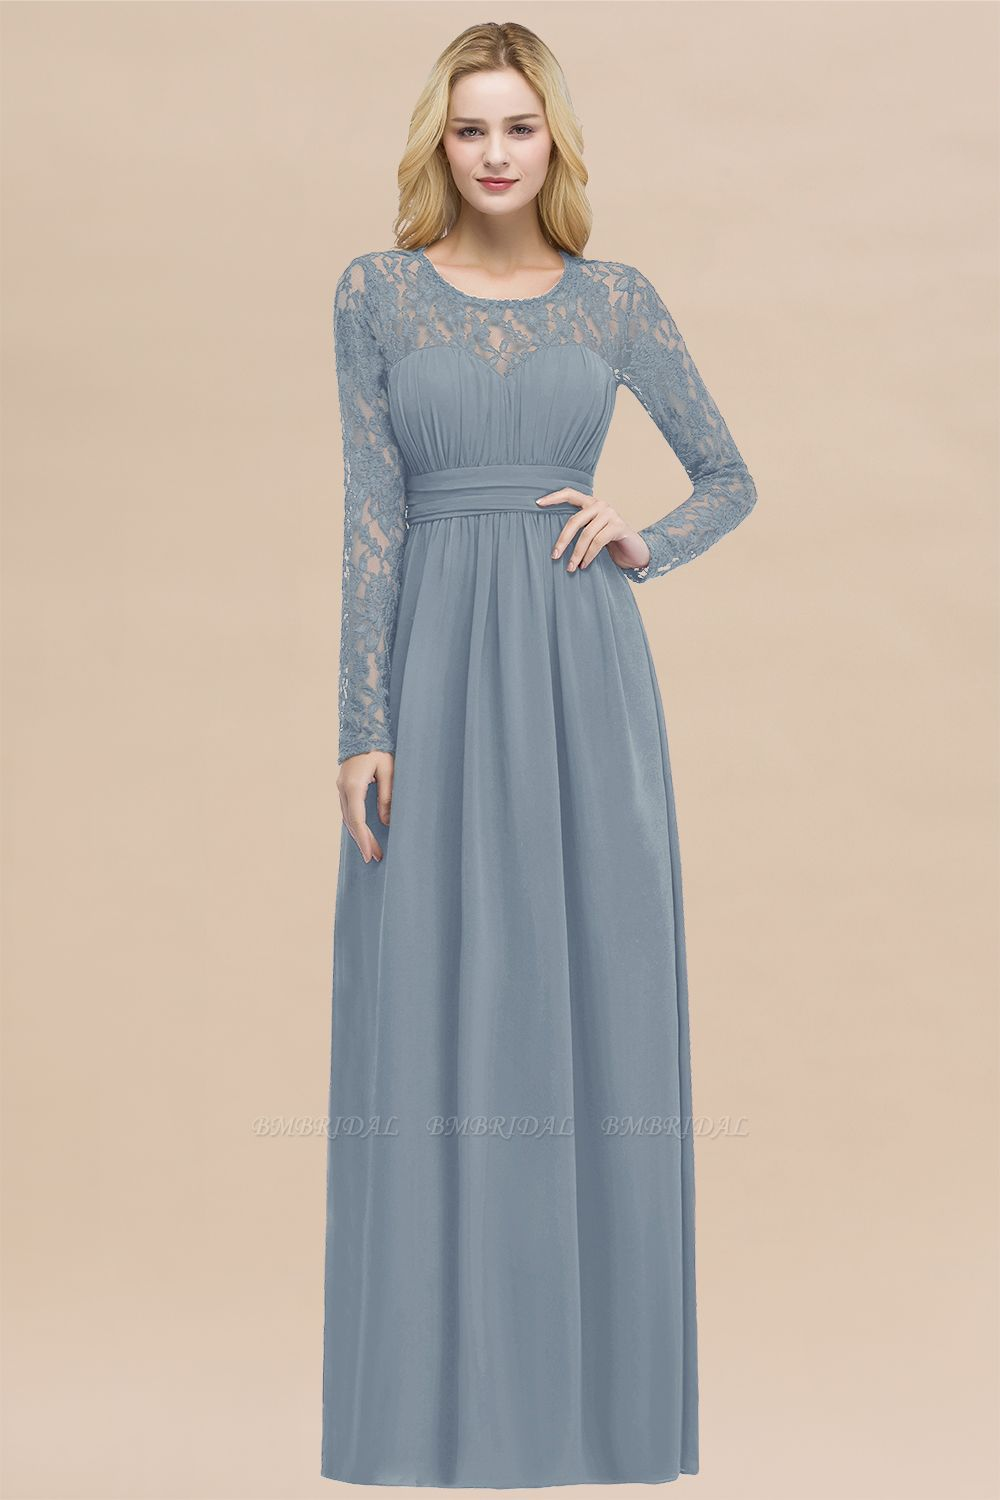 BMbridal Elegant Lace Burgundy Bridesmaid Dresses Online with Long Sleeves